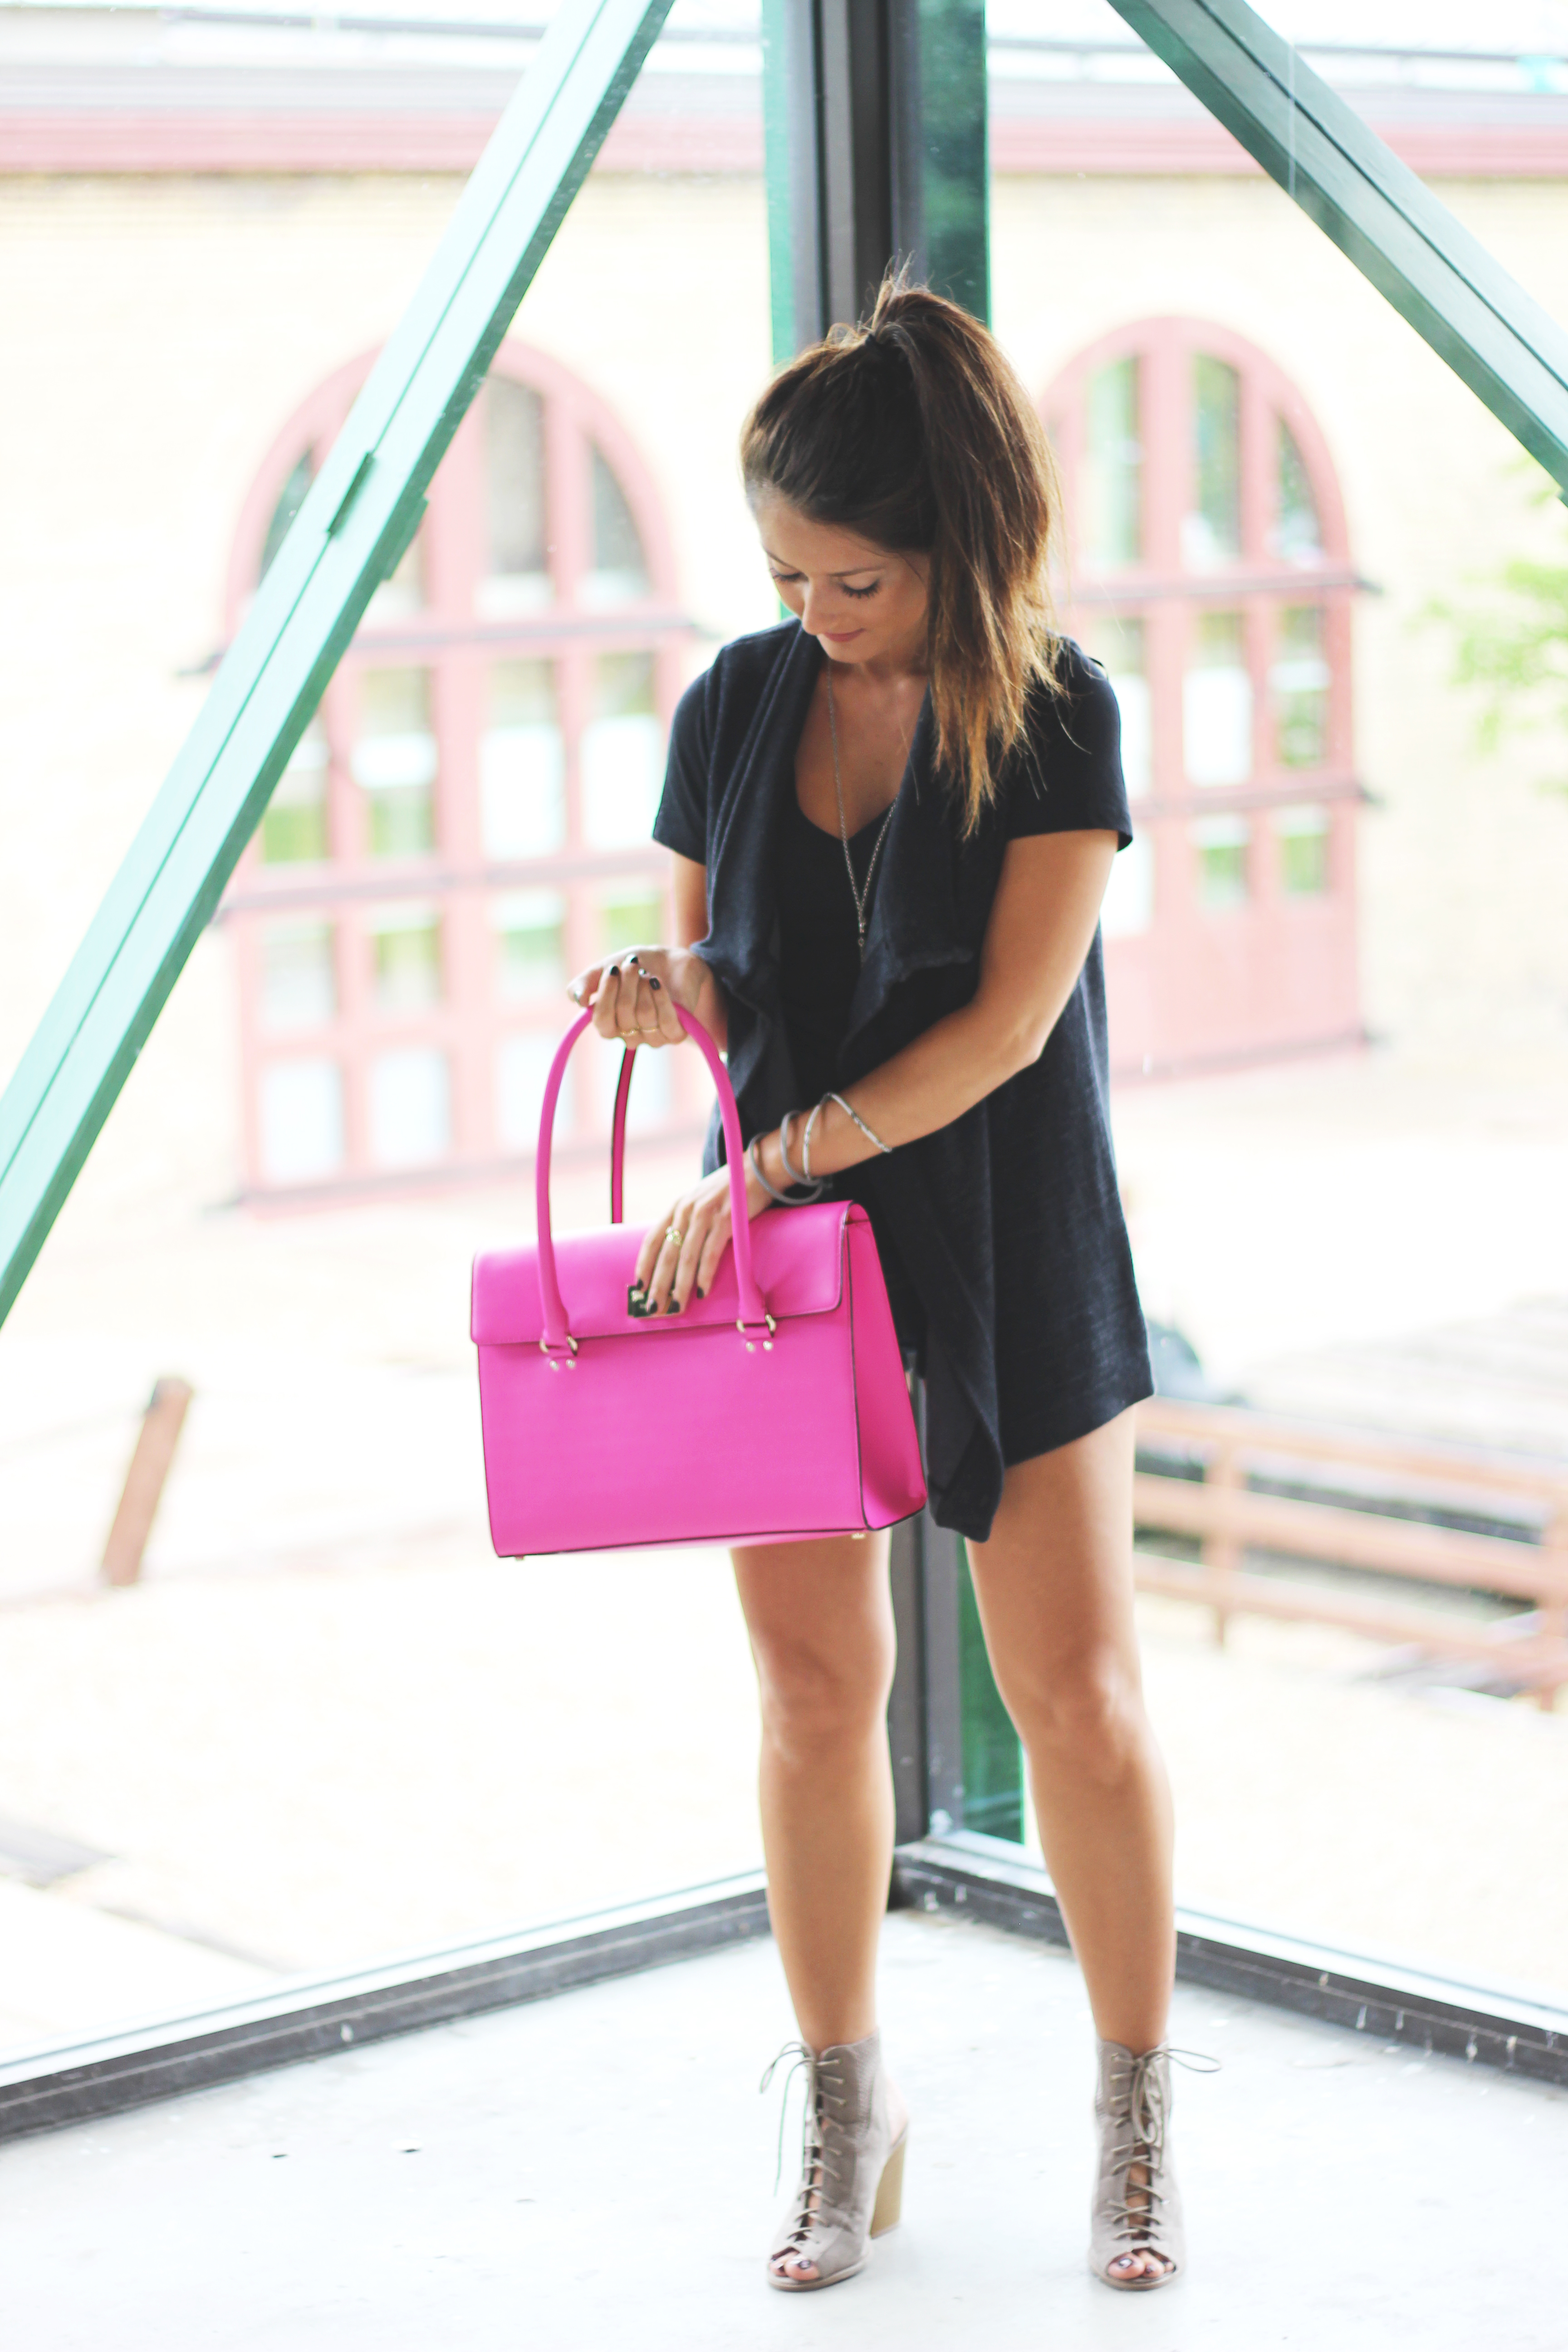 Black and pink outfit